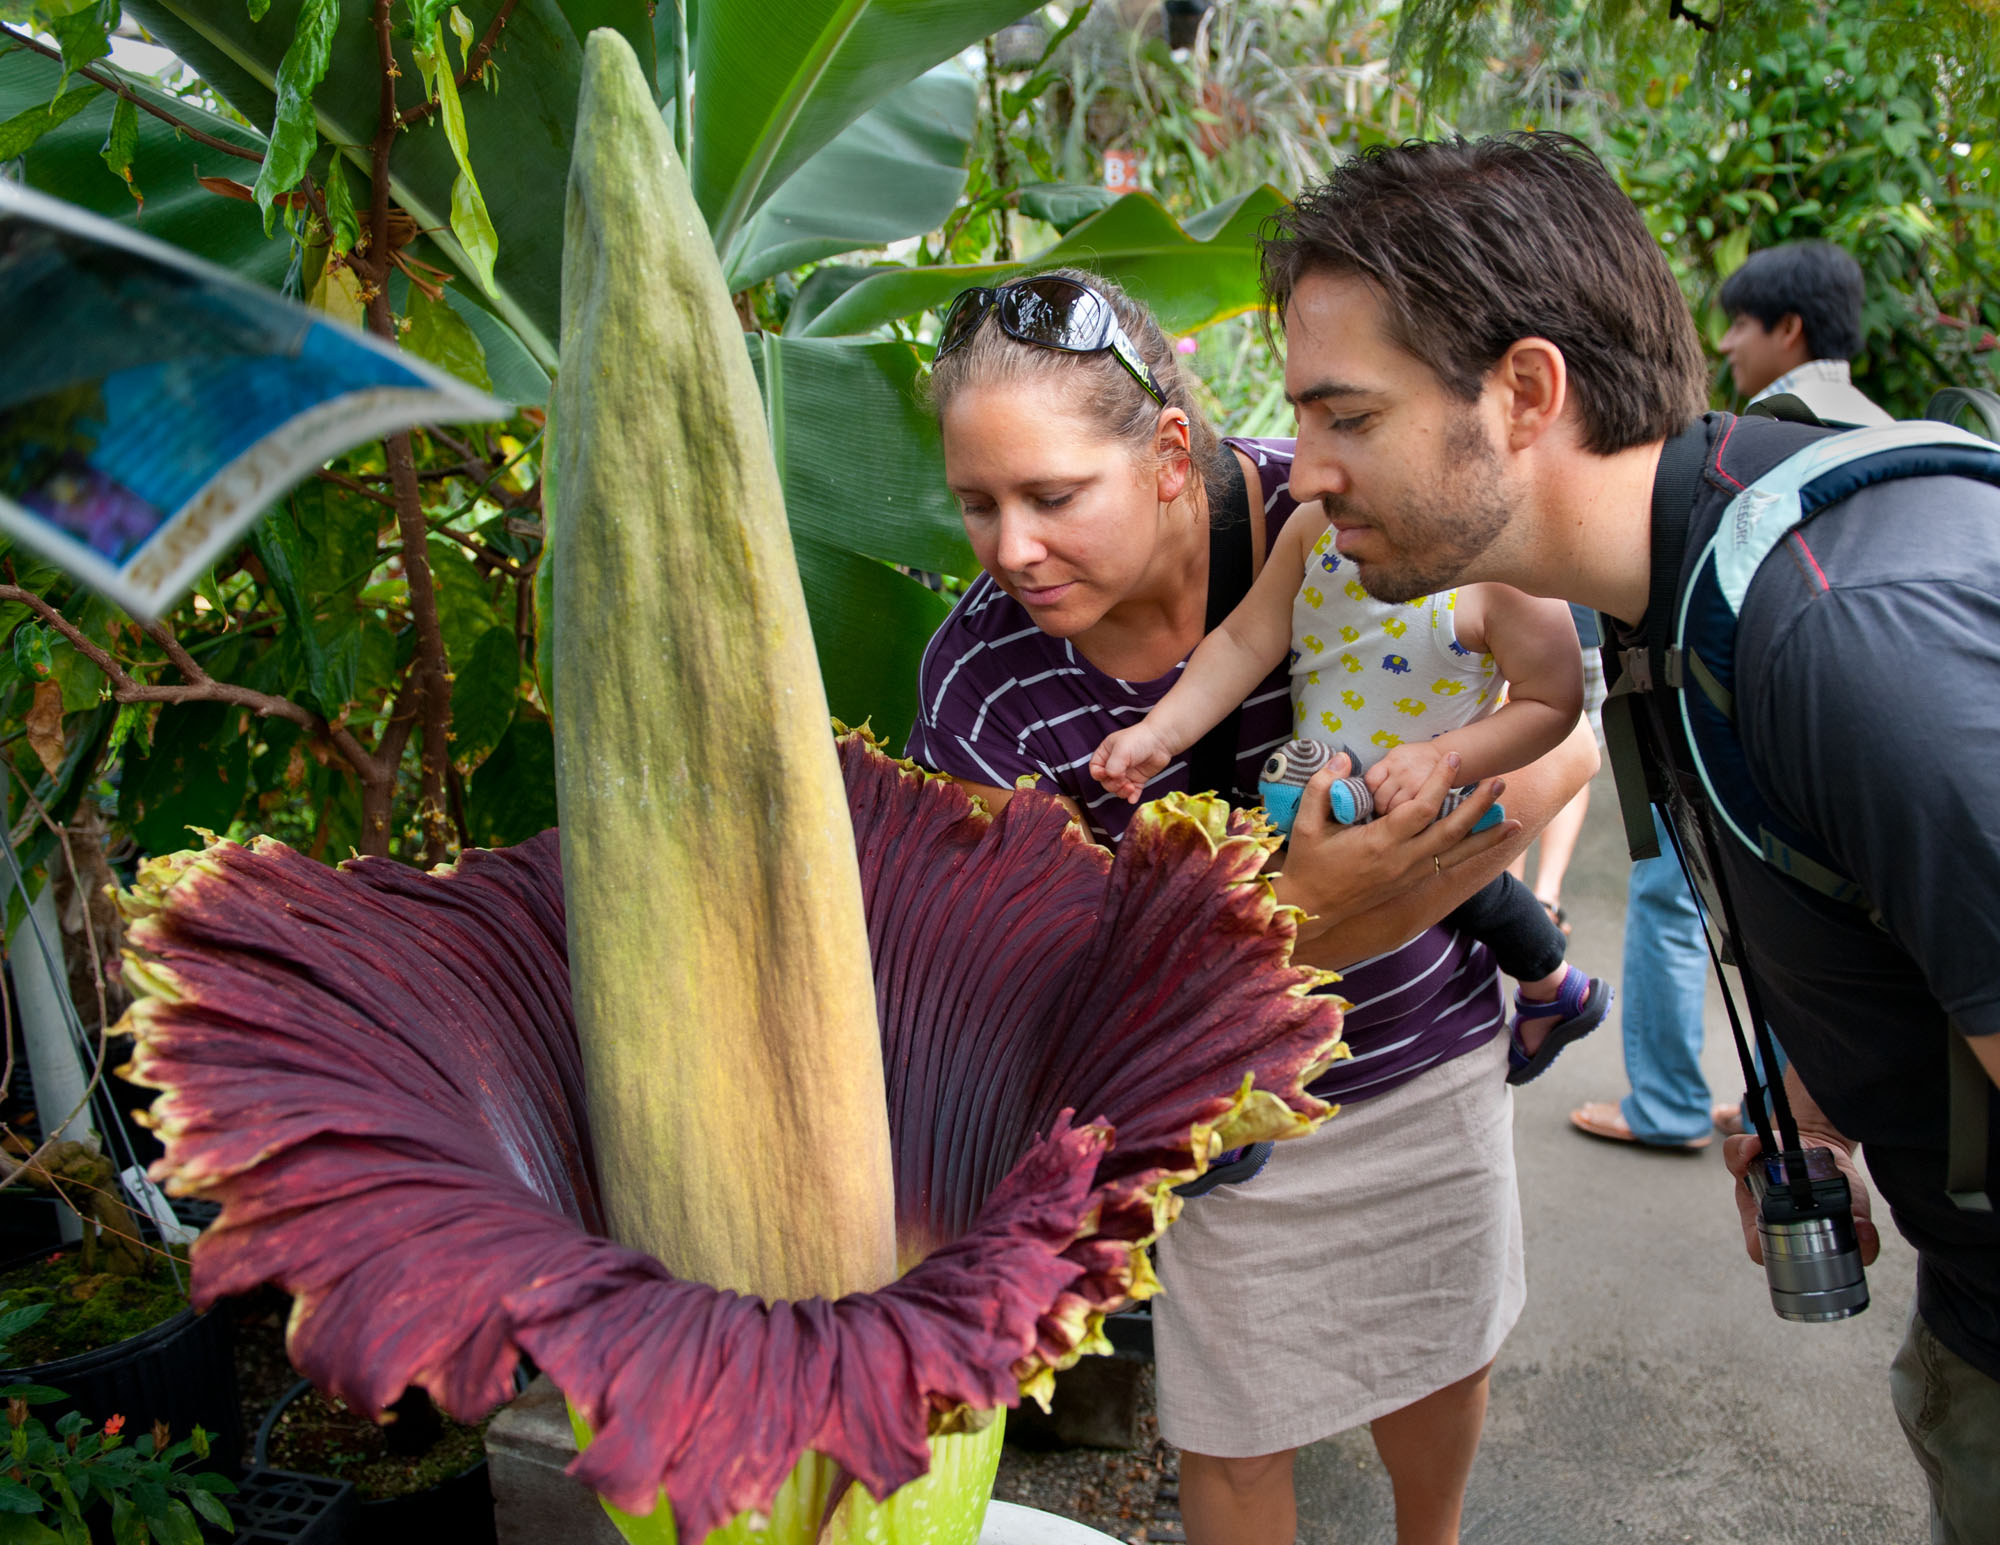 ORG XMIT: CASAB301 Leia Matern,left, of Woodland, Calif, her husband Philip, and their 15-month-old daughter Matilda, smell 17-year-old Tammy the Titan corpse flower that is in bloom at the UC Davis Botanical Conservatory, Monday June 18, 2012.(AP Photo/The Sacramento Bee, Randy Pench) MANDATORY CREDIT